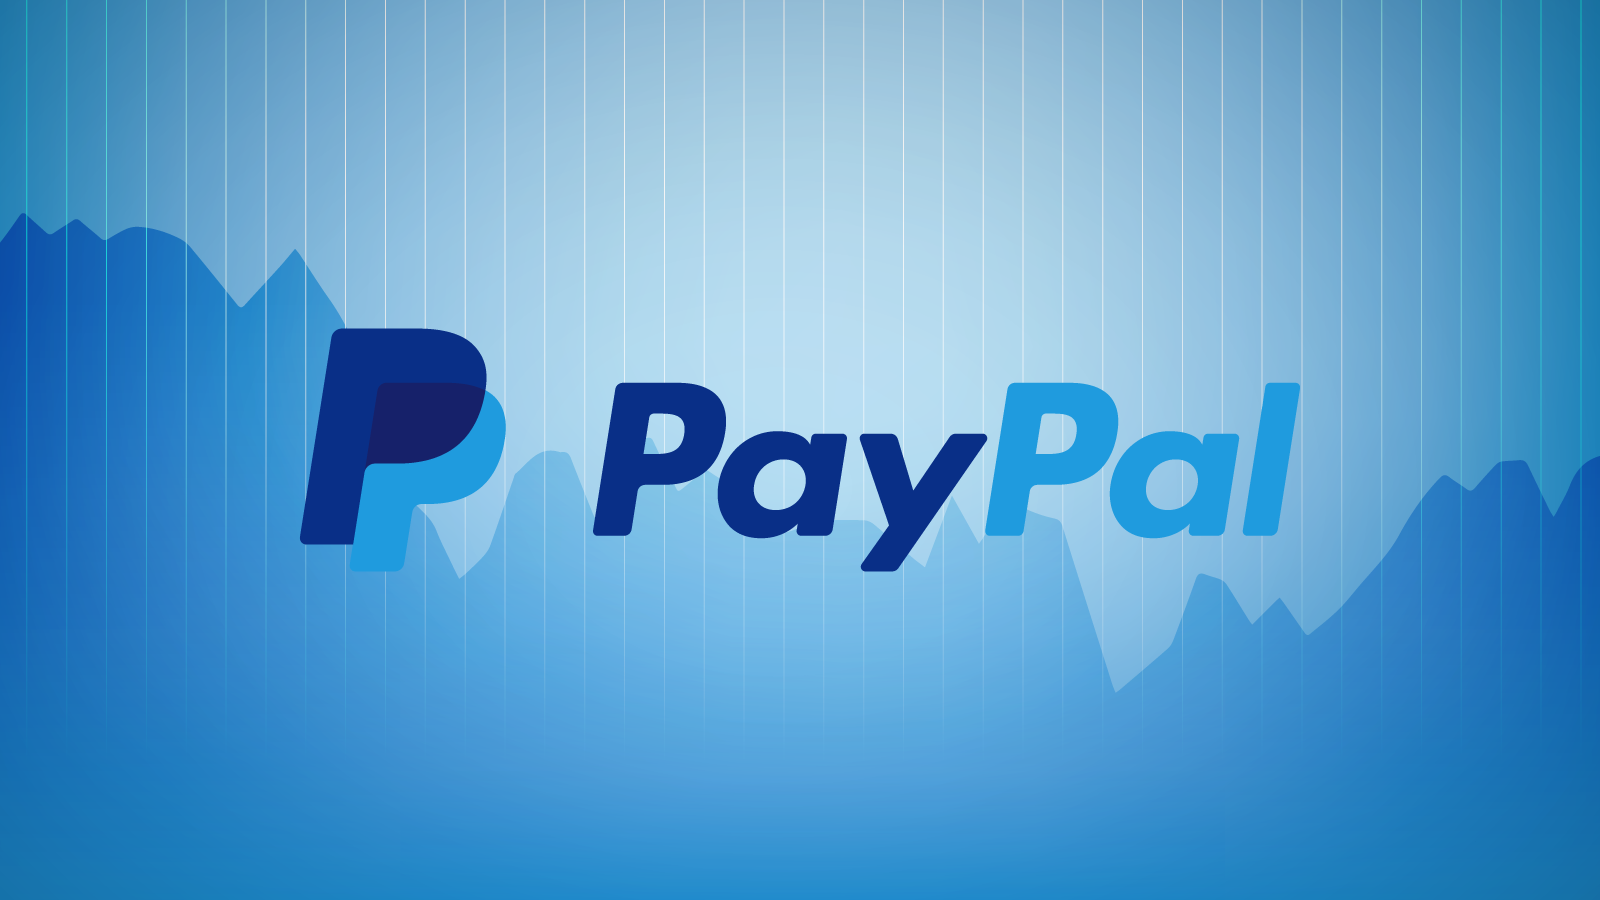 PayPal Aims to Prevent Crypto Ransomware Attacks With New Patent